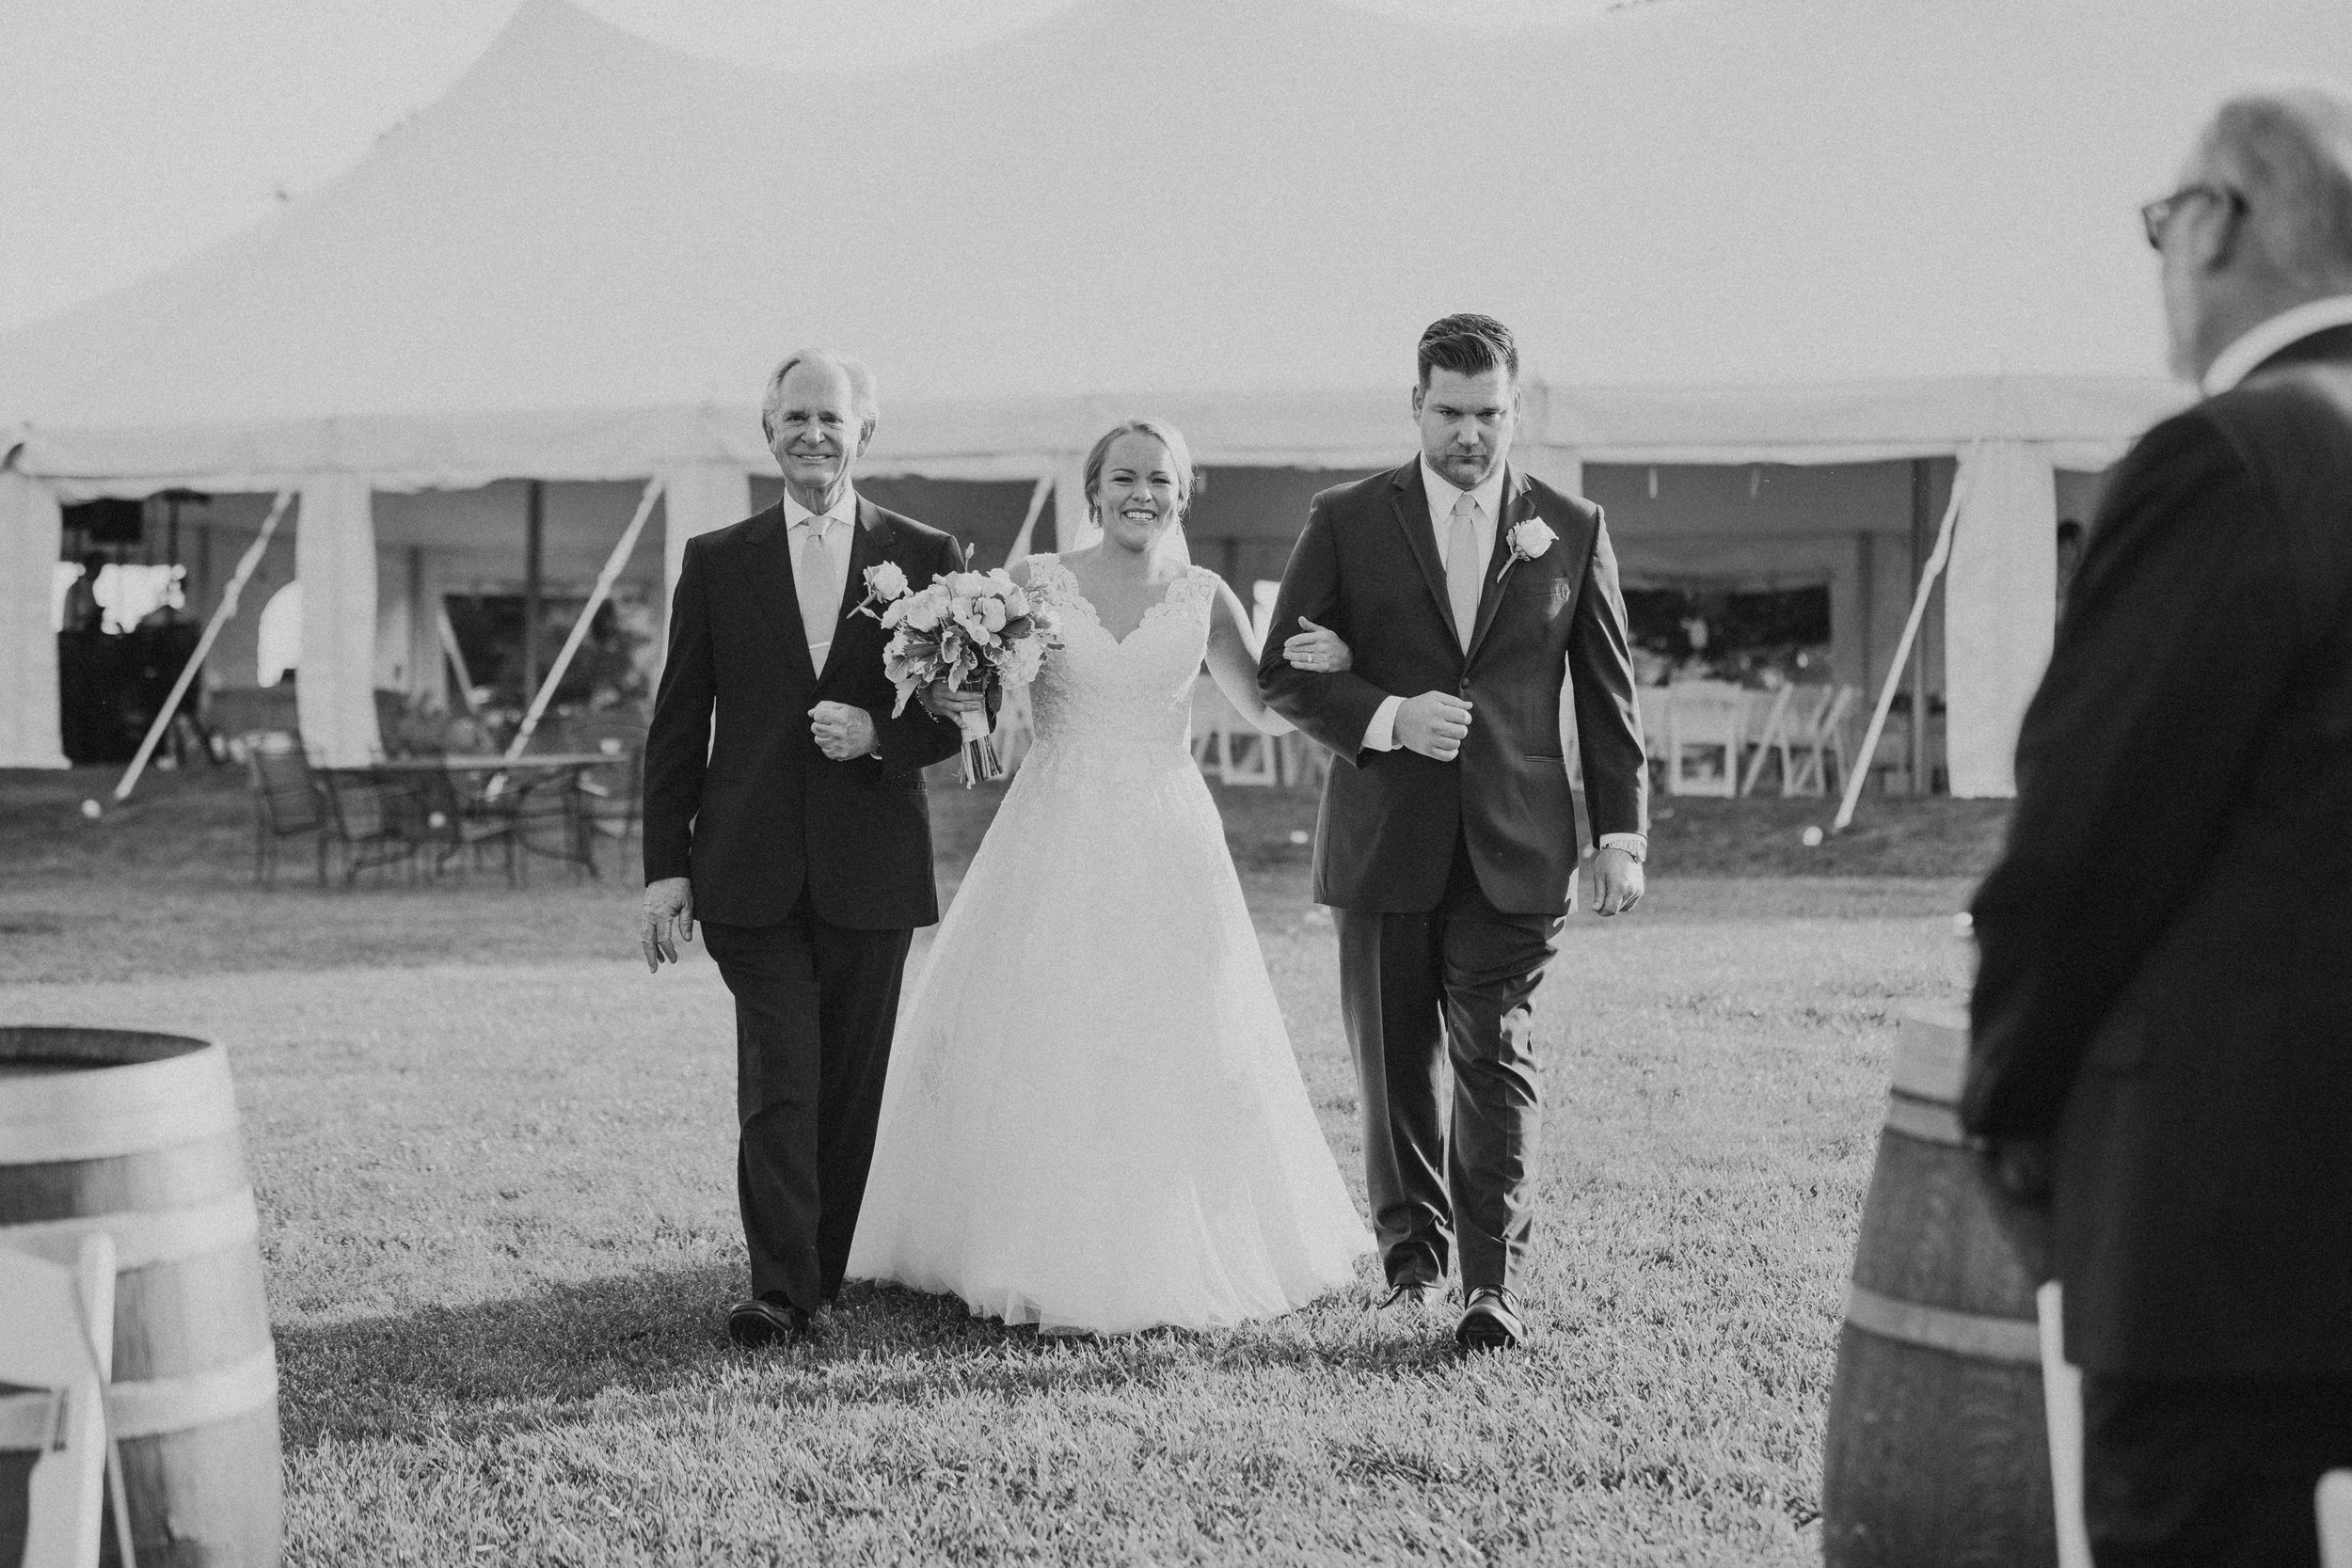 Molly + Dan wedding 6-7-19 (564 of 916).jpg